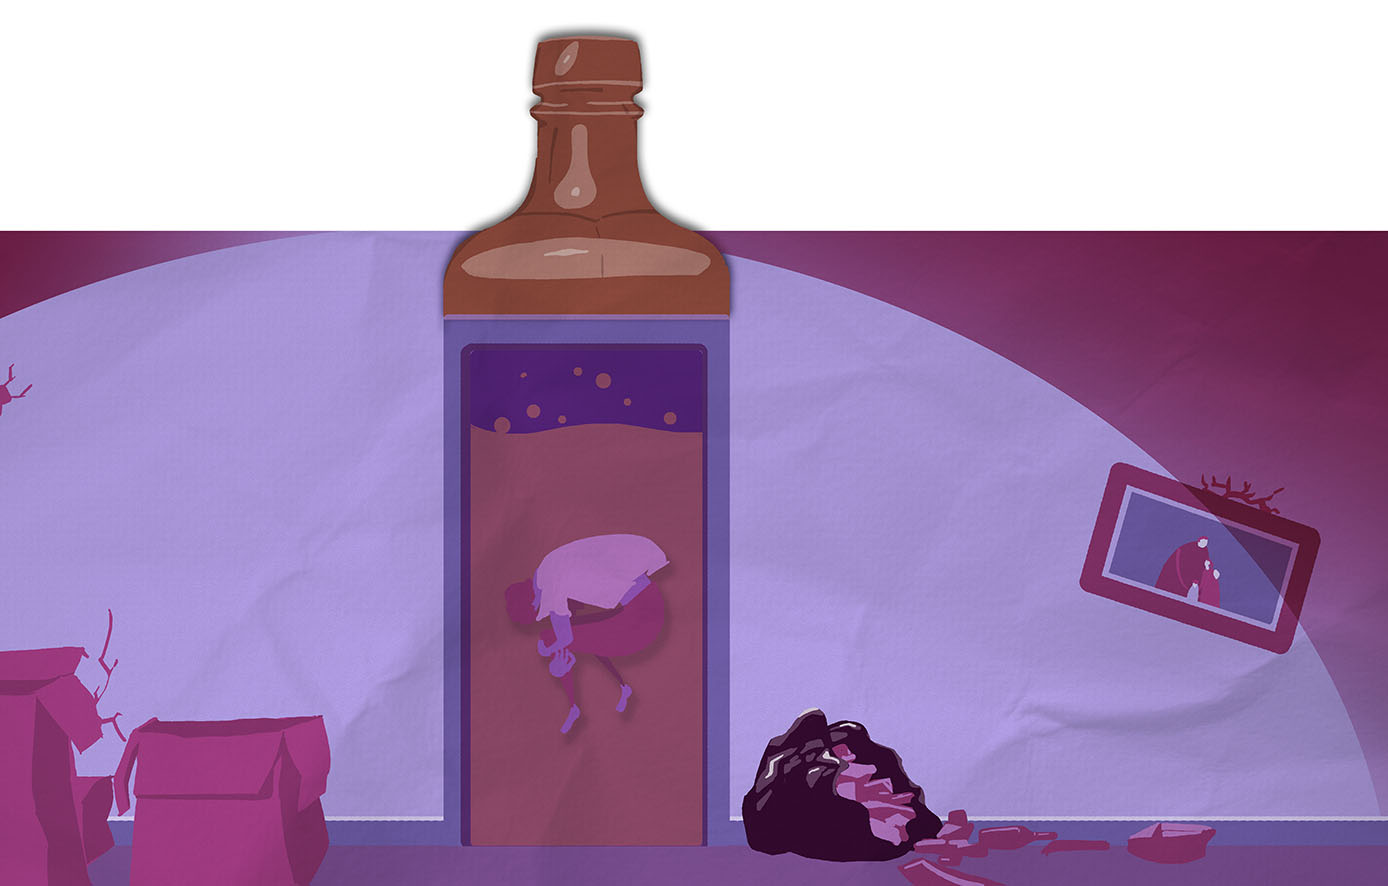 Illustration for 'Children of Alcoholism' - article in The Psychologist. Art Director: Mike Thompson.